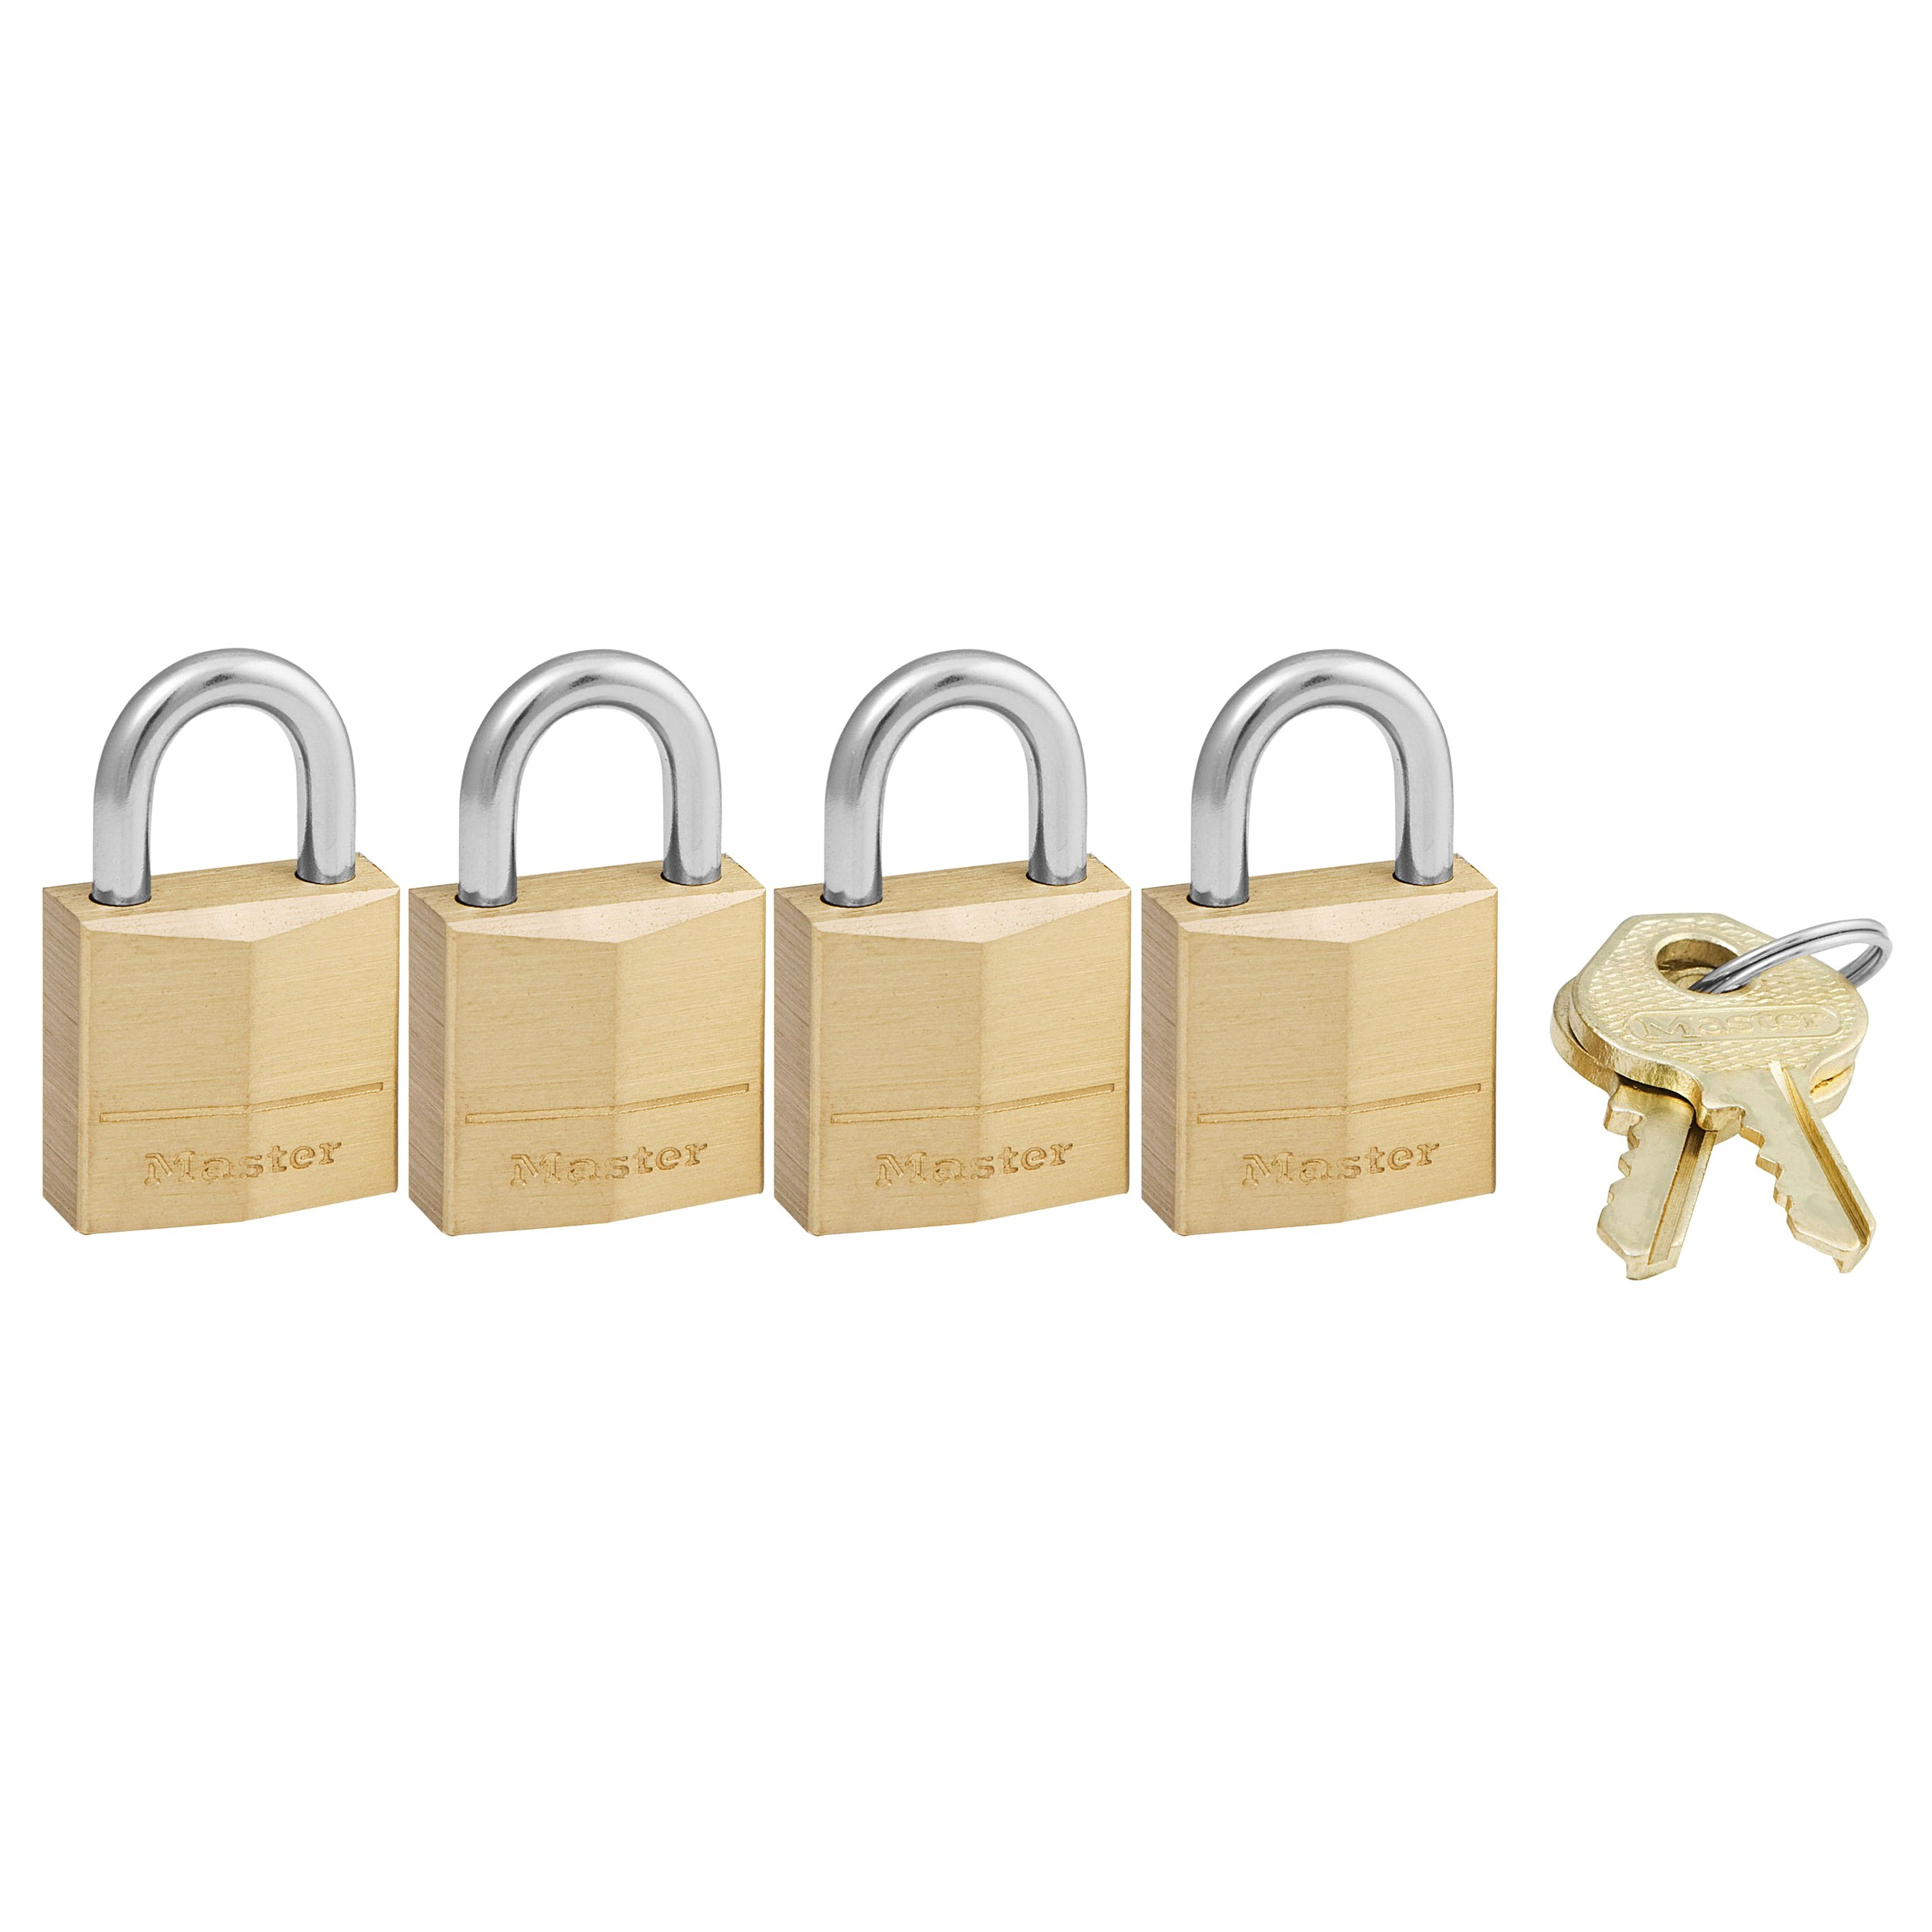 Master Lock 120Q Brass Padlock 4 Pack by Master Lock